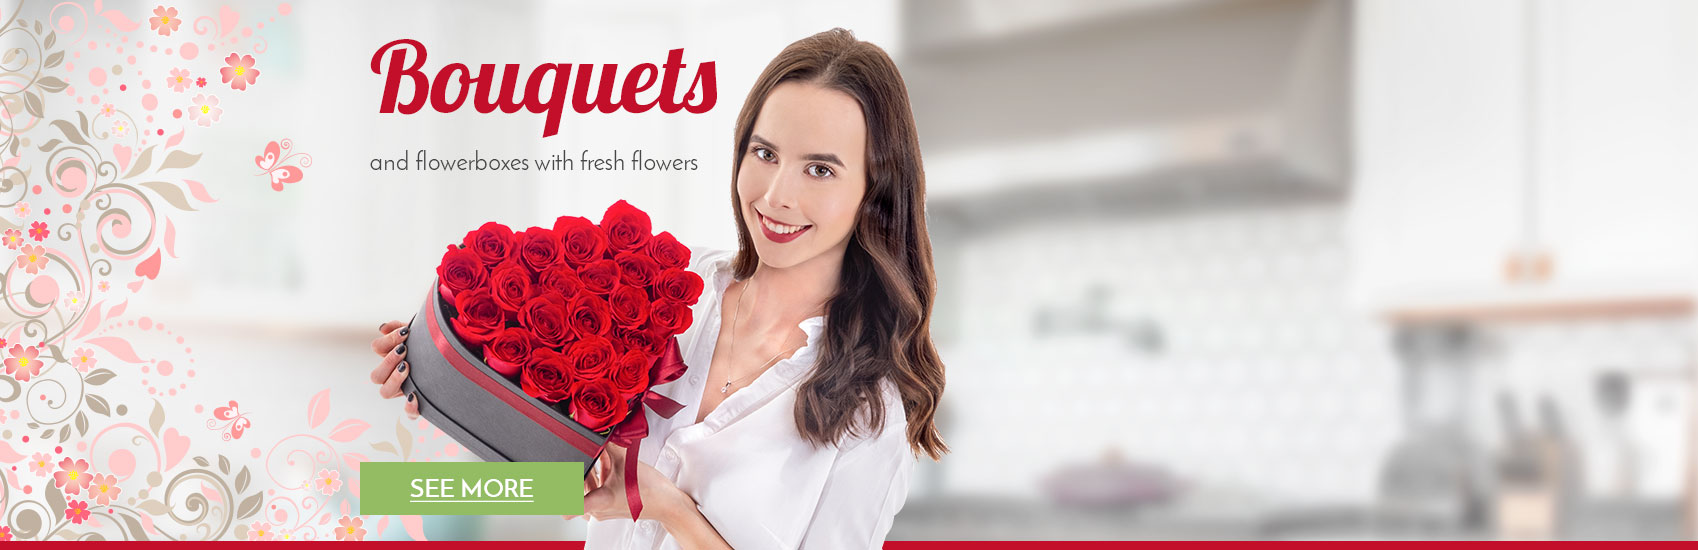 Bouquets and flowerboxes